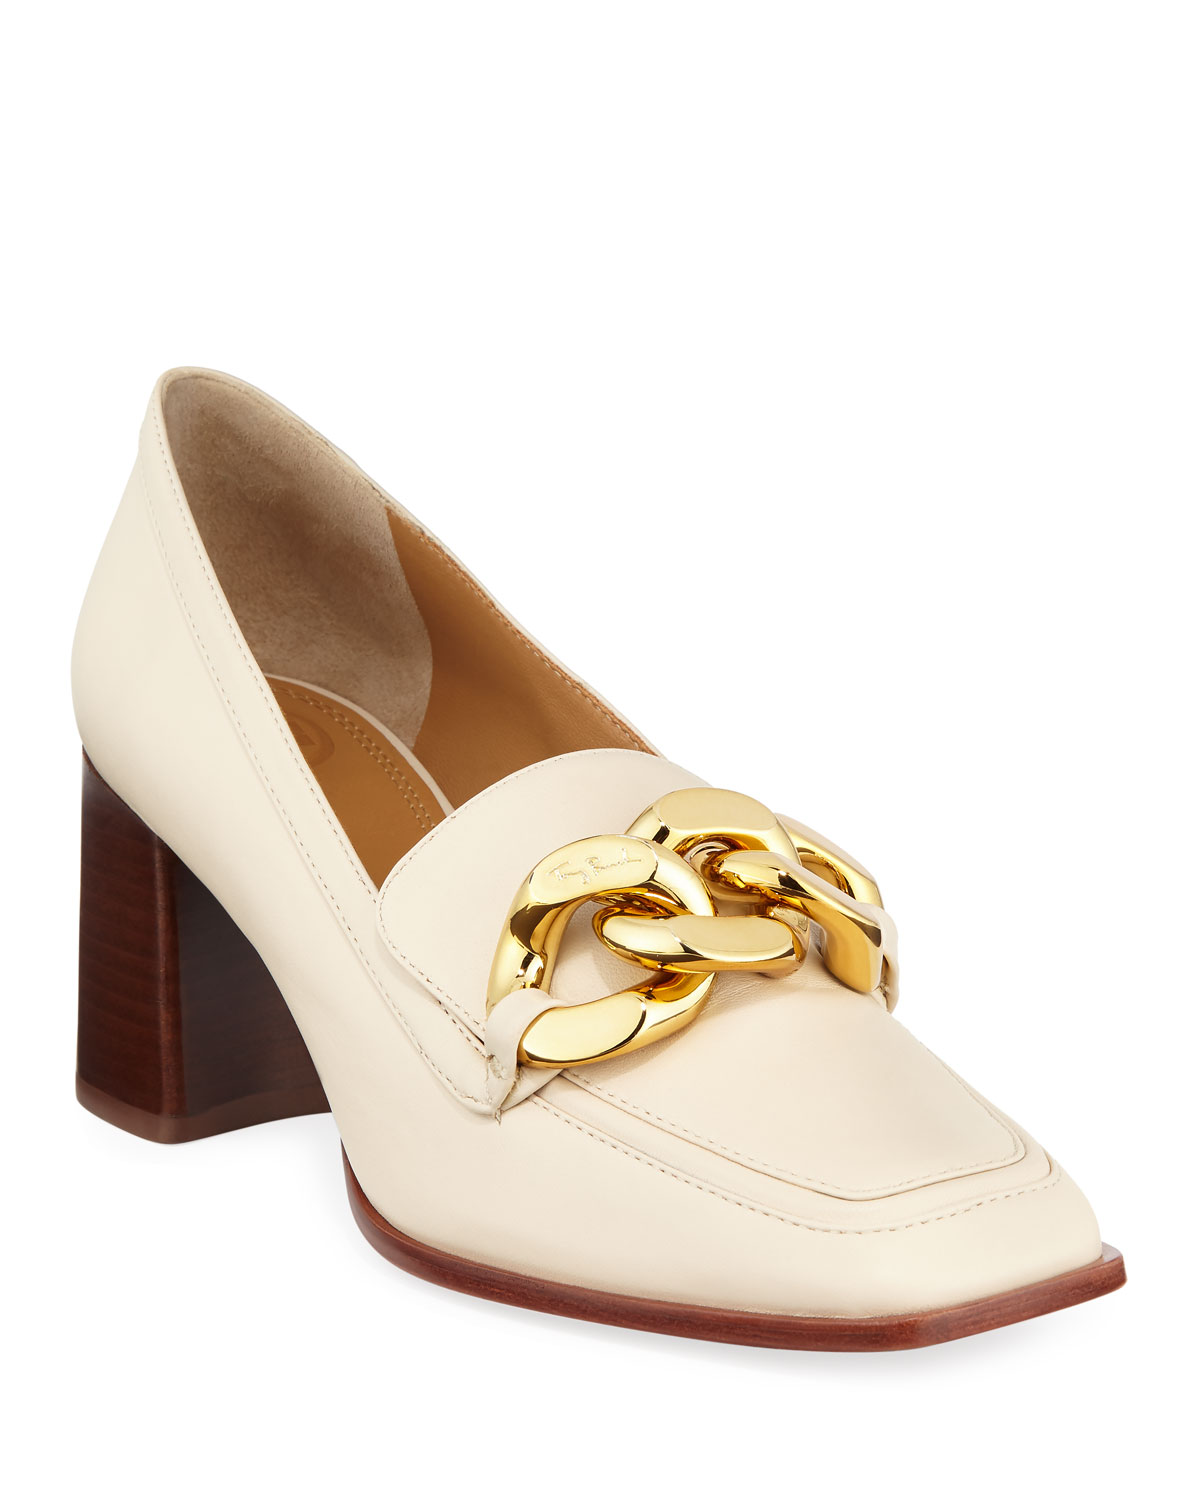 4ce6d85ed27 Tory Burch Adrien 65mm Loafer Pumps